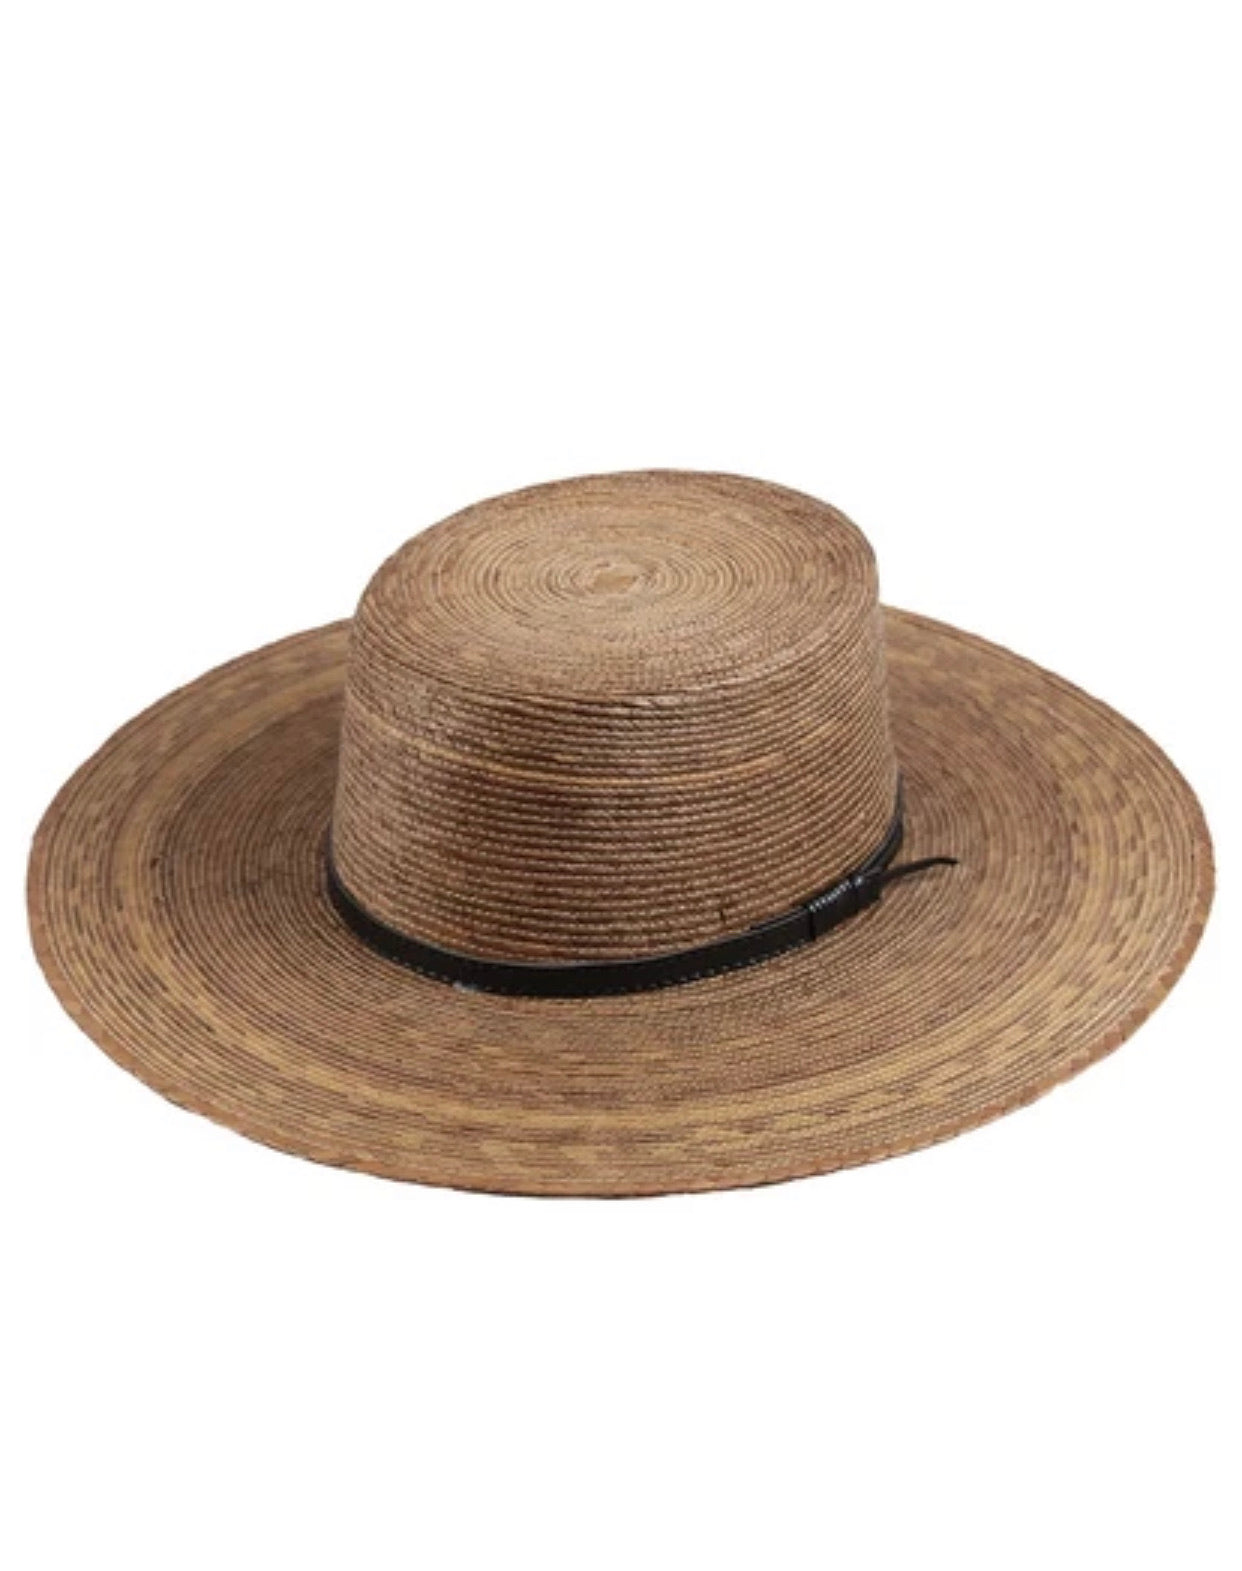 The Venice Straw Boater Hat